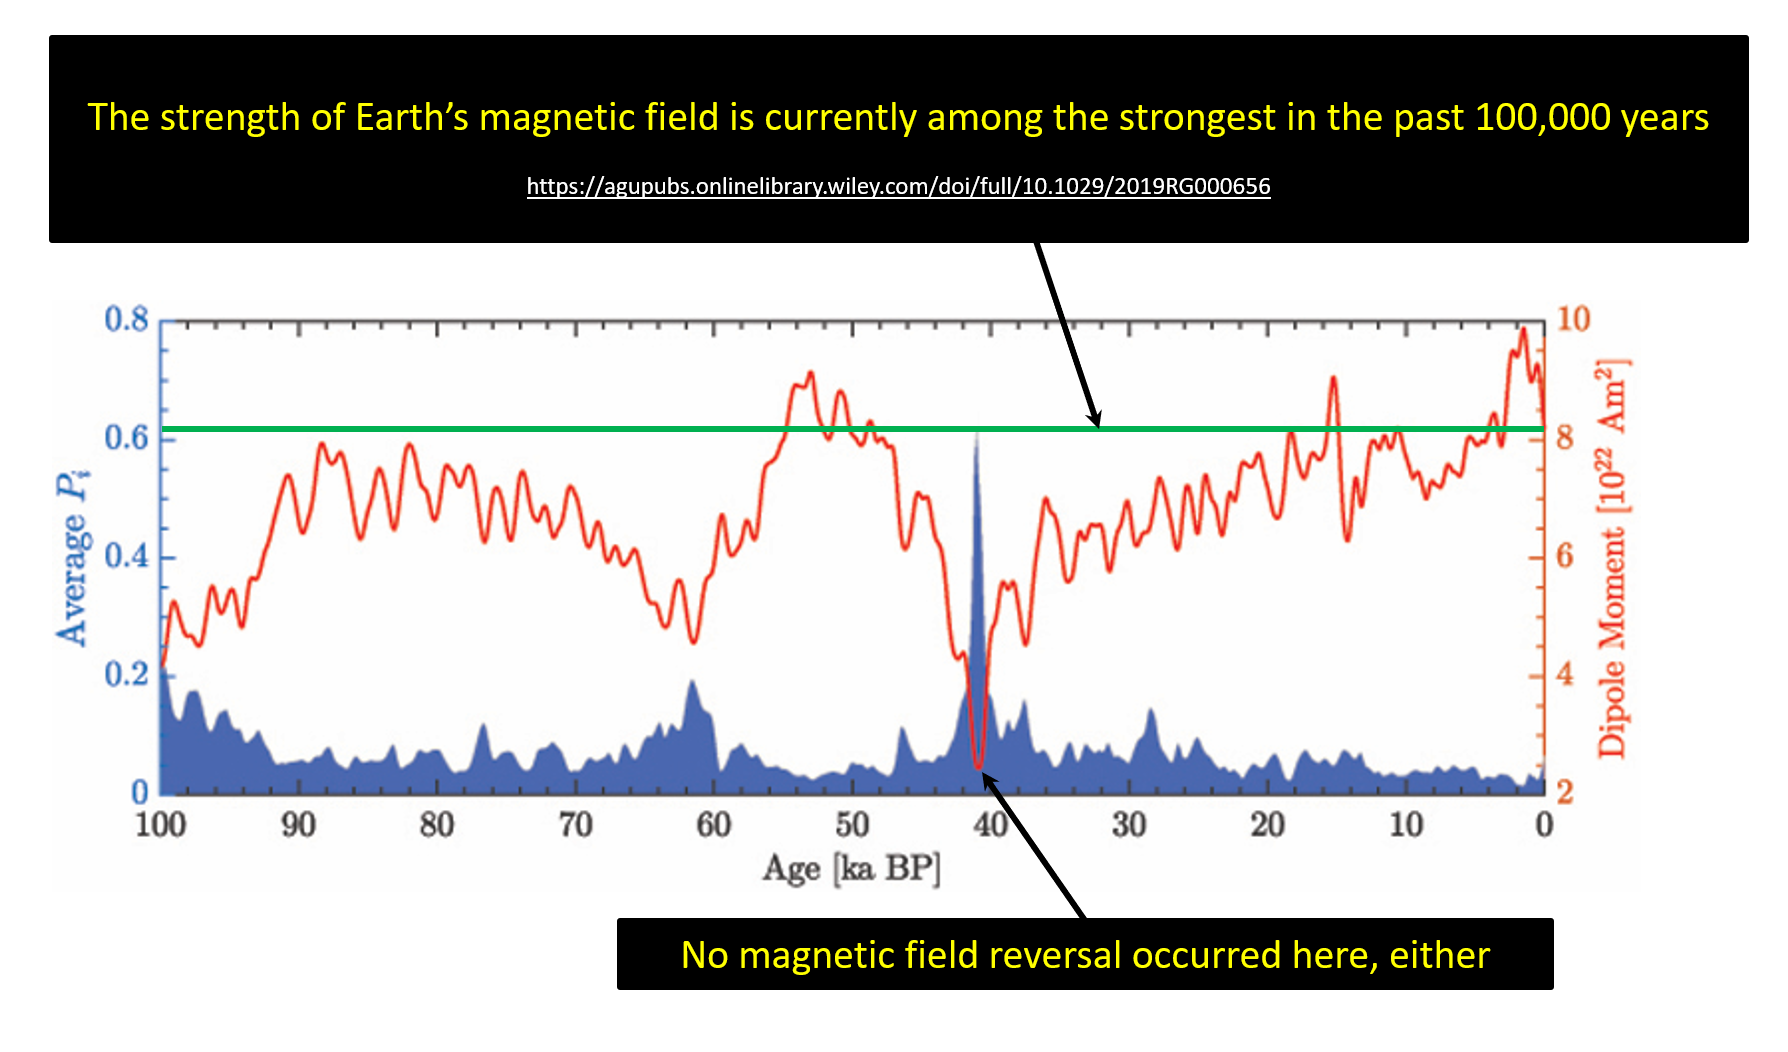 100,000 years of magnetic field strength